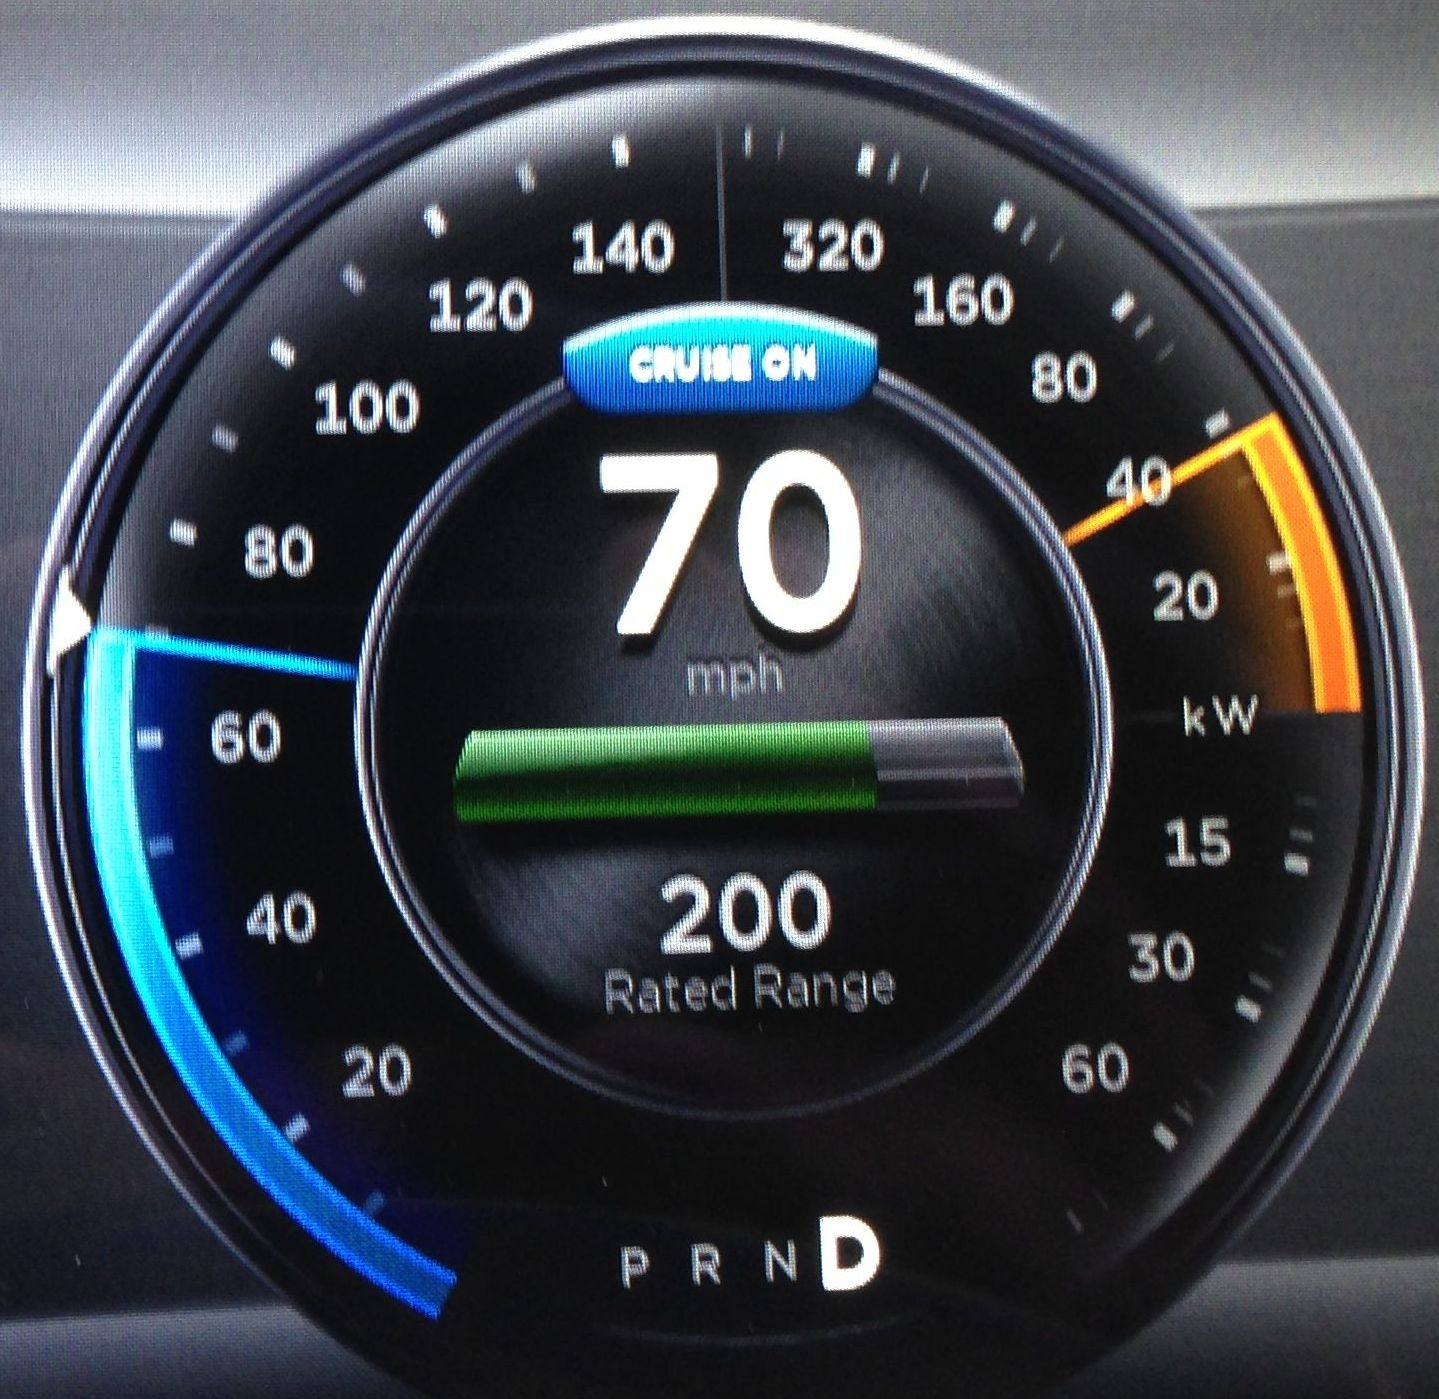 Tesla Solar Roof Calculator >> How to use the Tesla Model S cruise control system